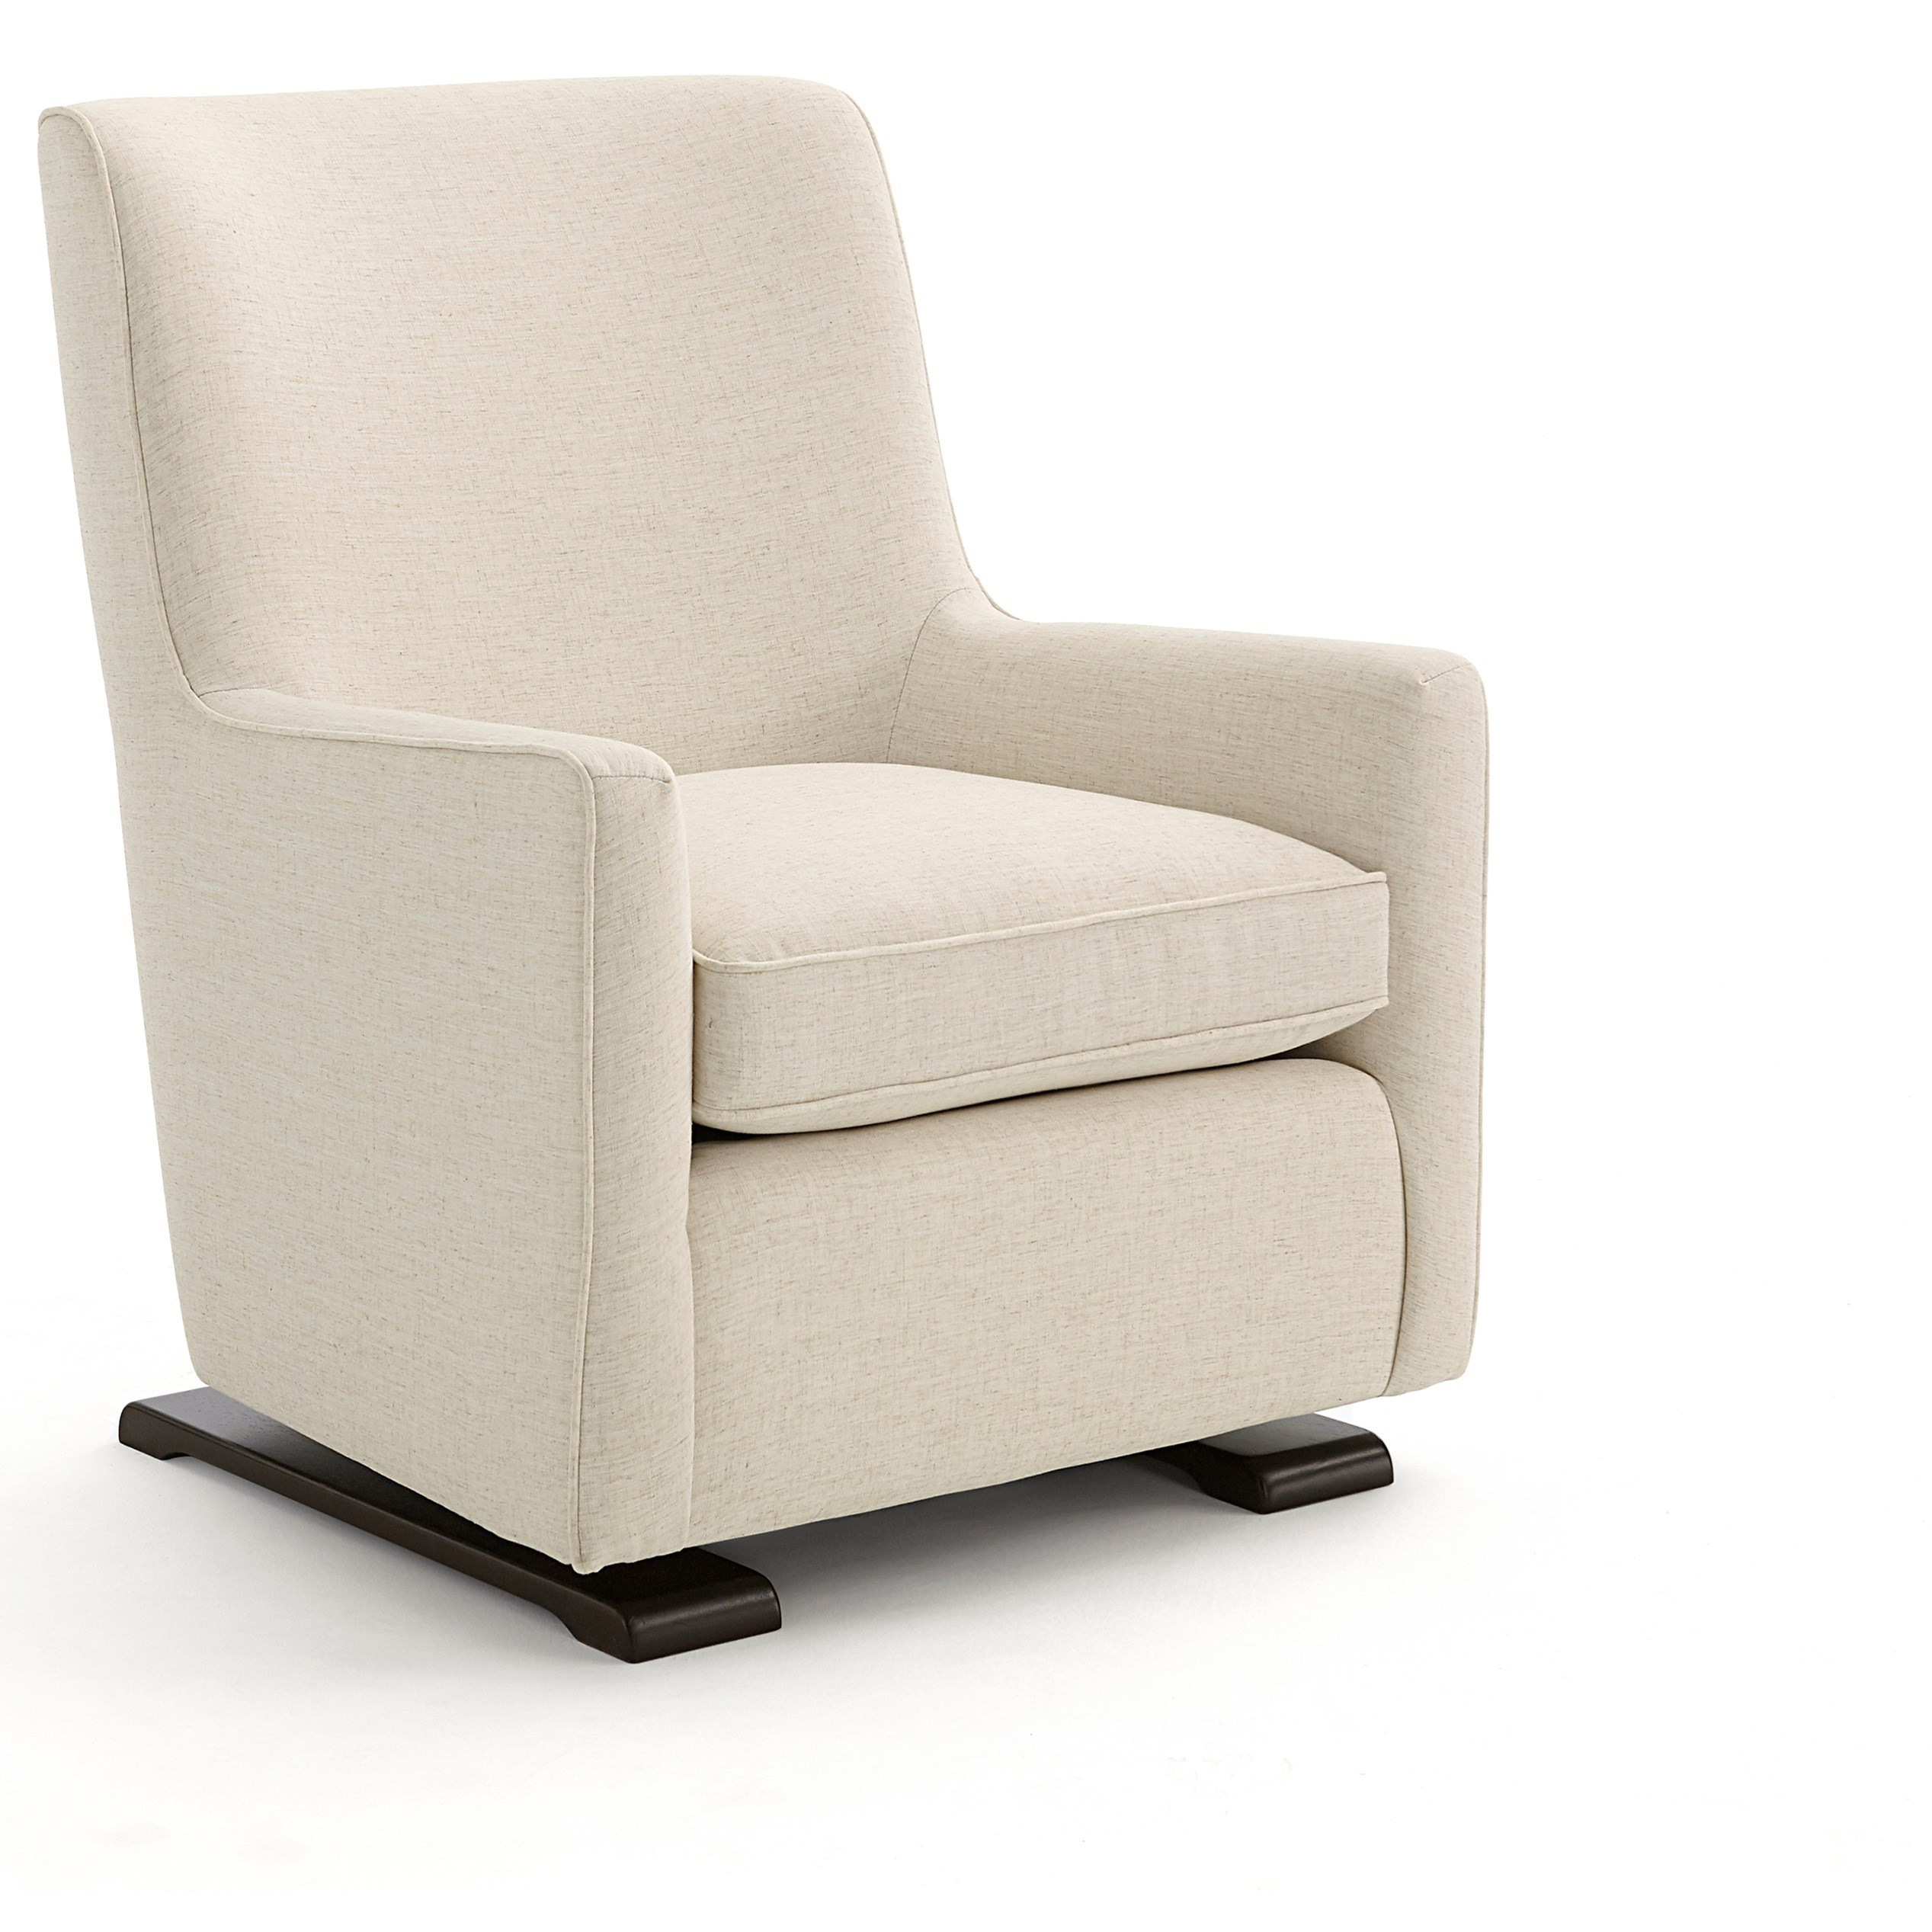 newest a3318 8152a Coral Contemporary Swivel Gliding Chair with Wood Runners by Best Home  Furnishings at Wayside Furniture